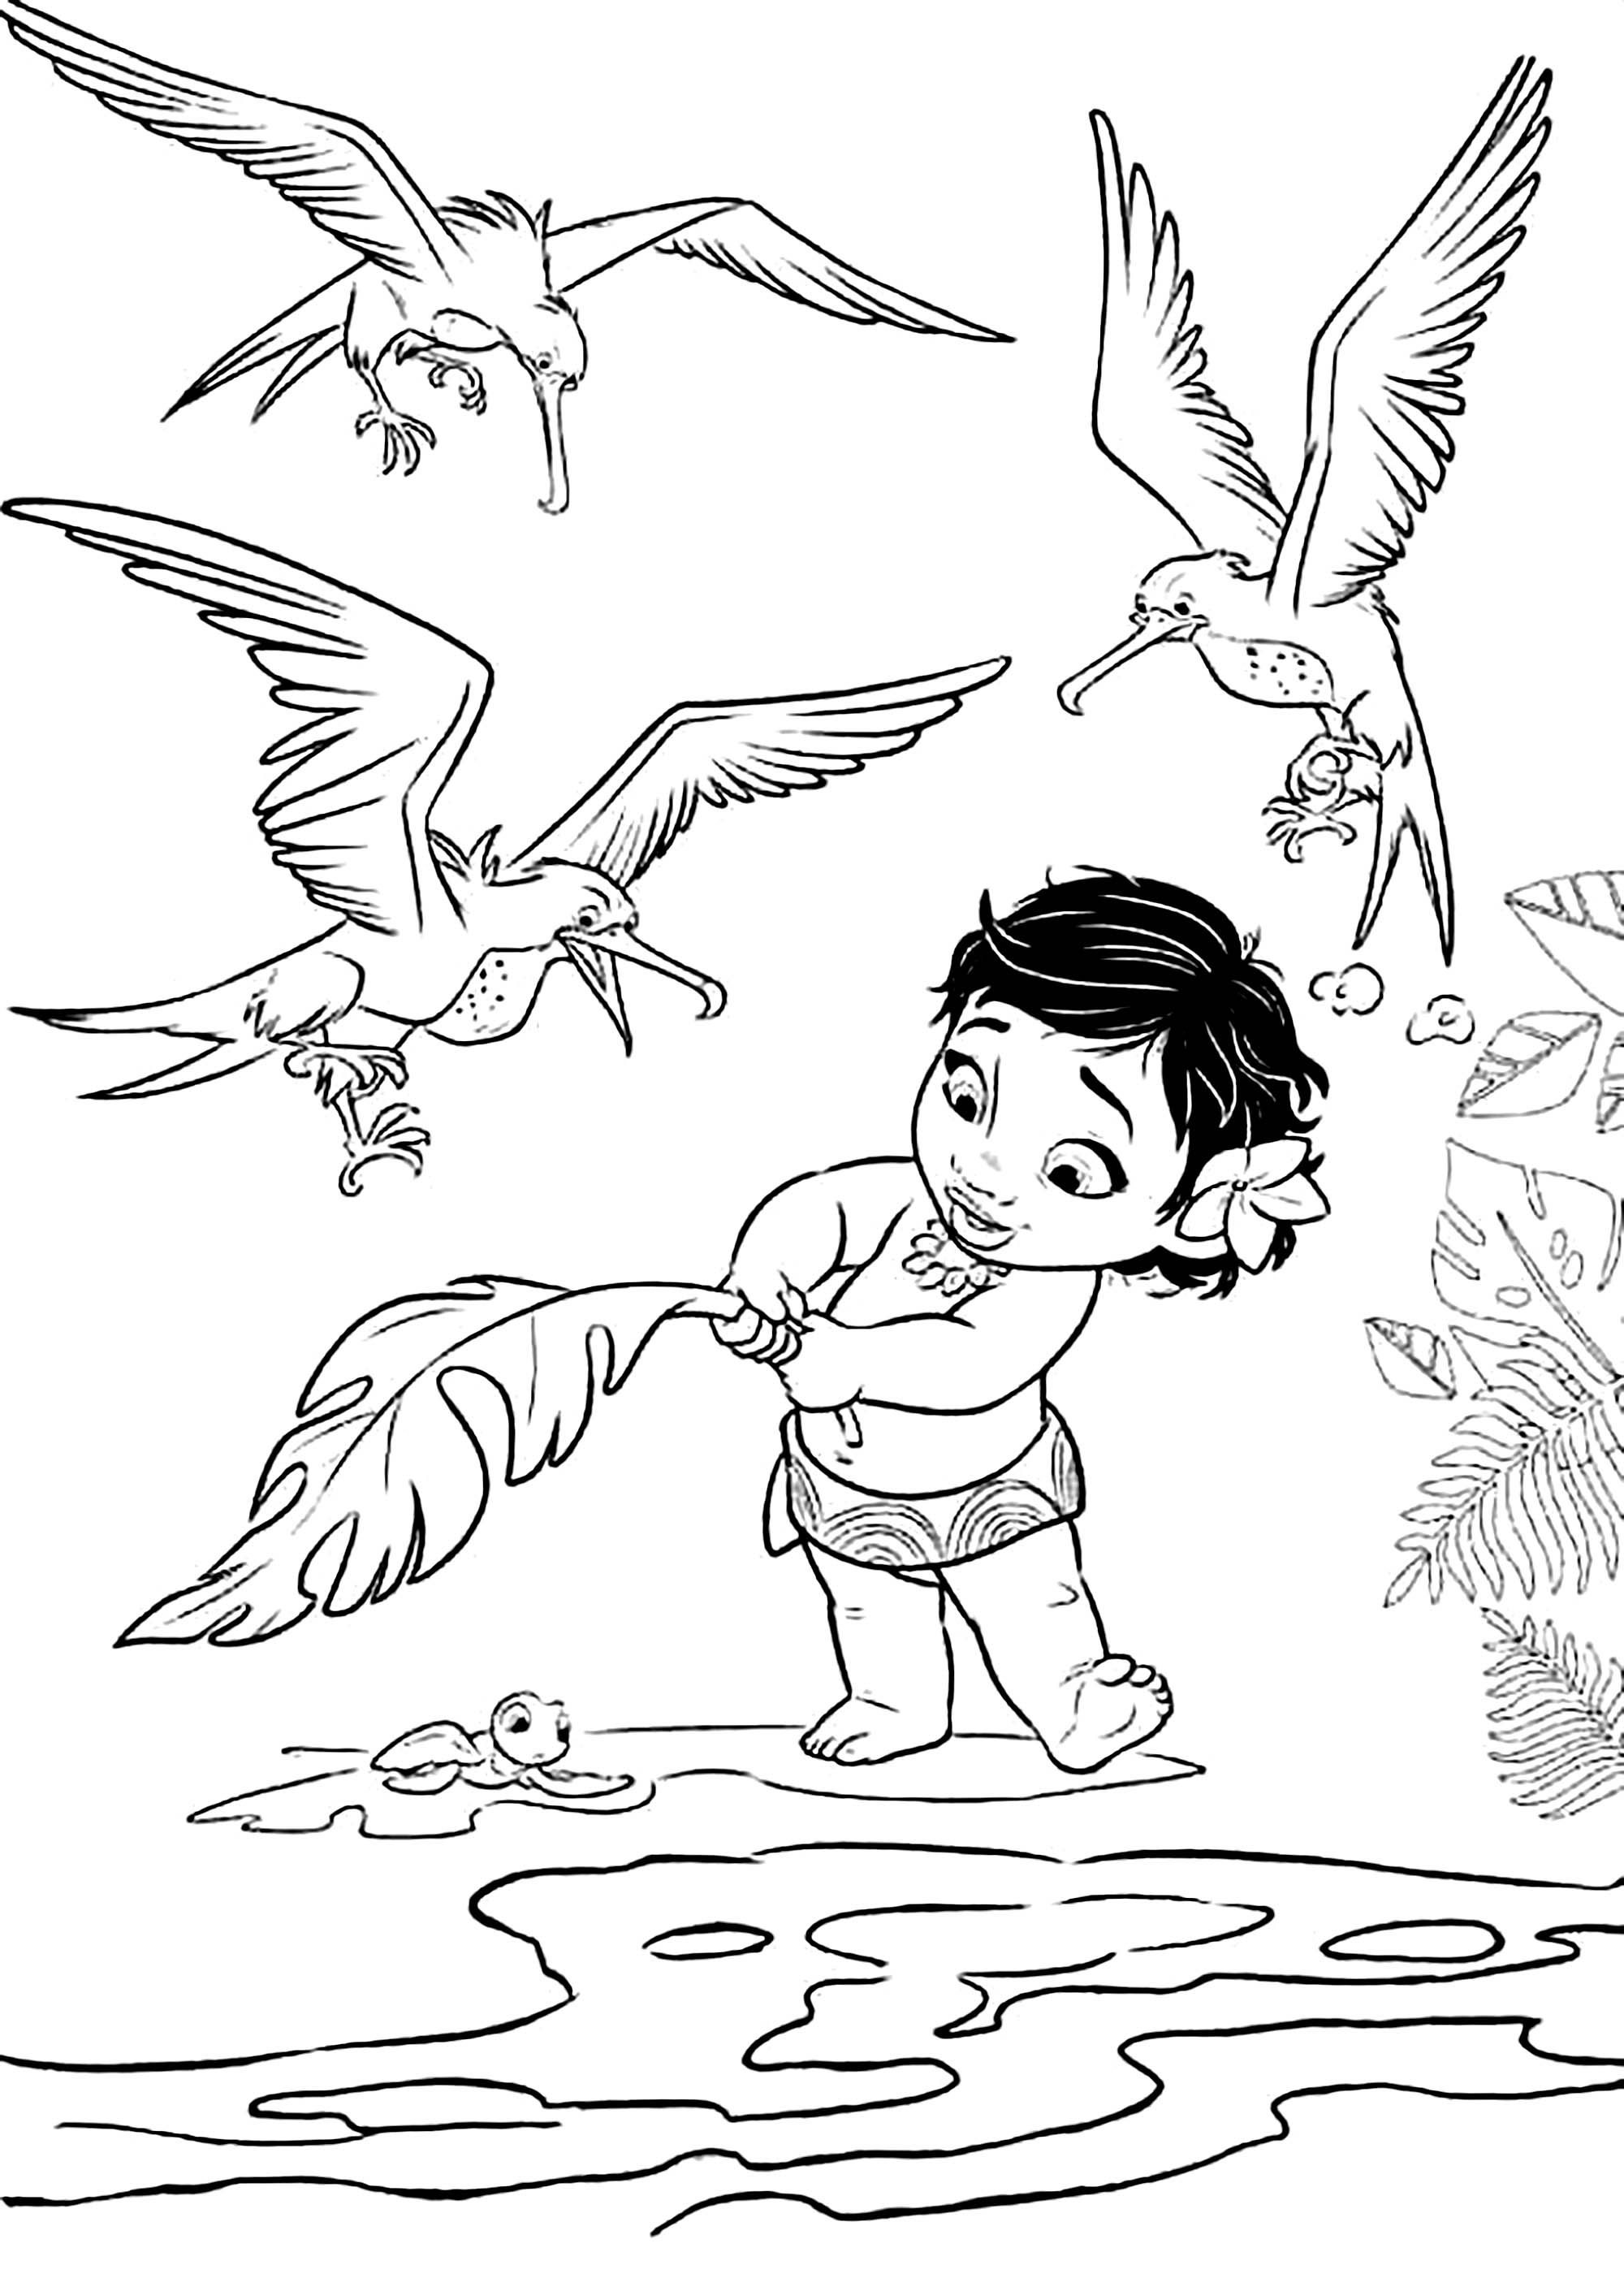 Moana for children - Moana Kids Coloring Pages